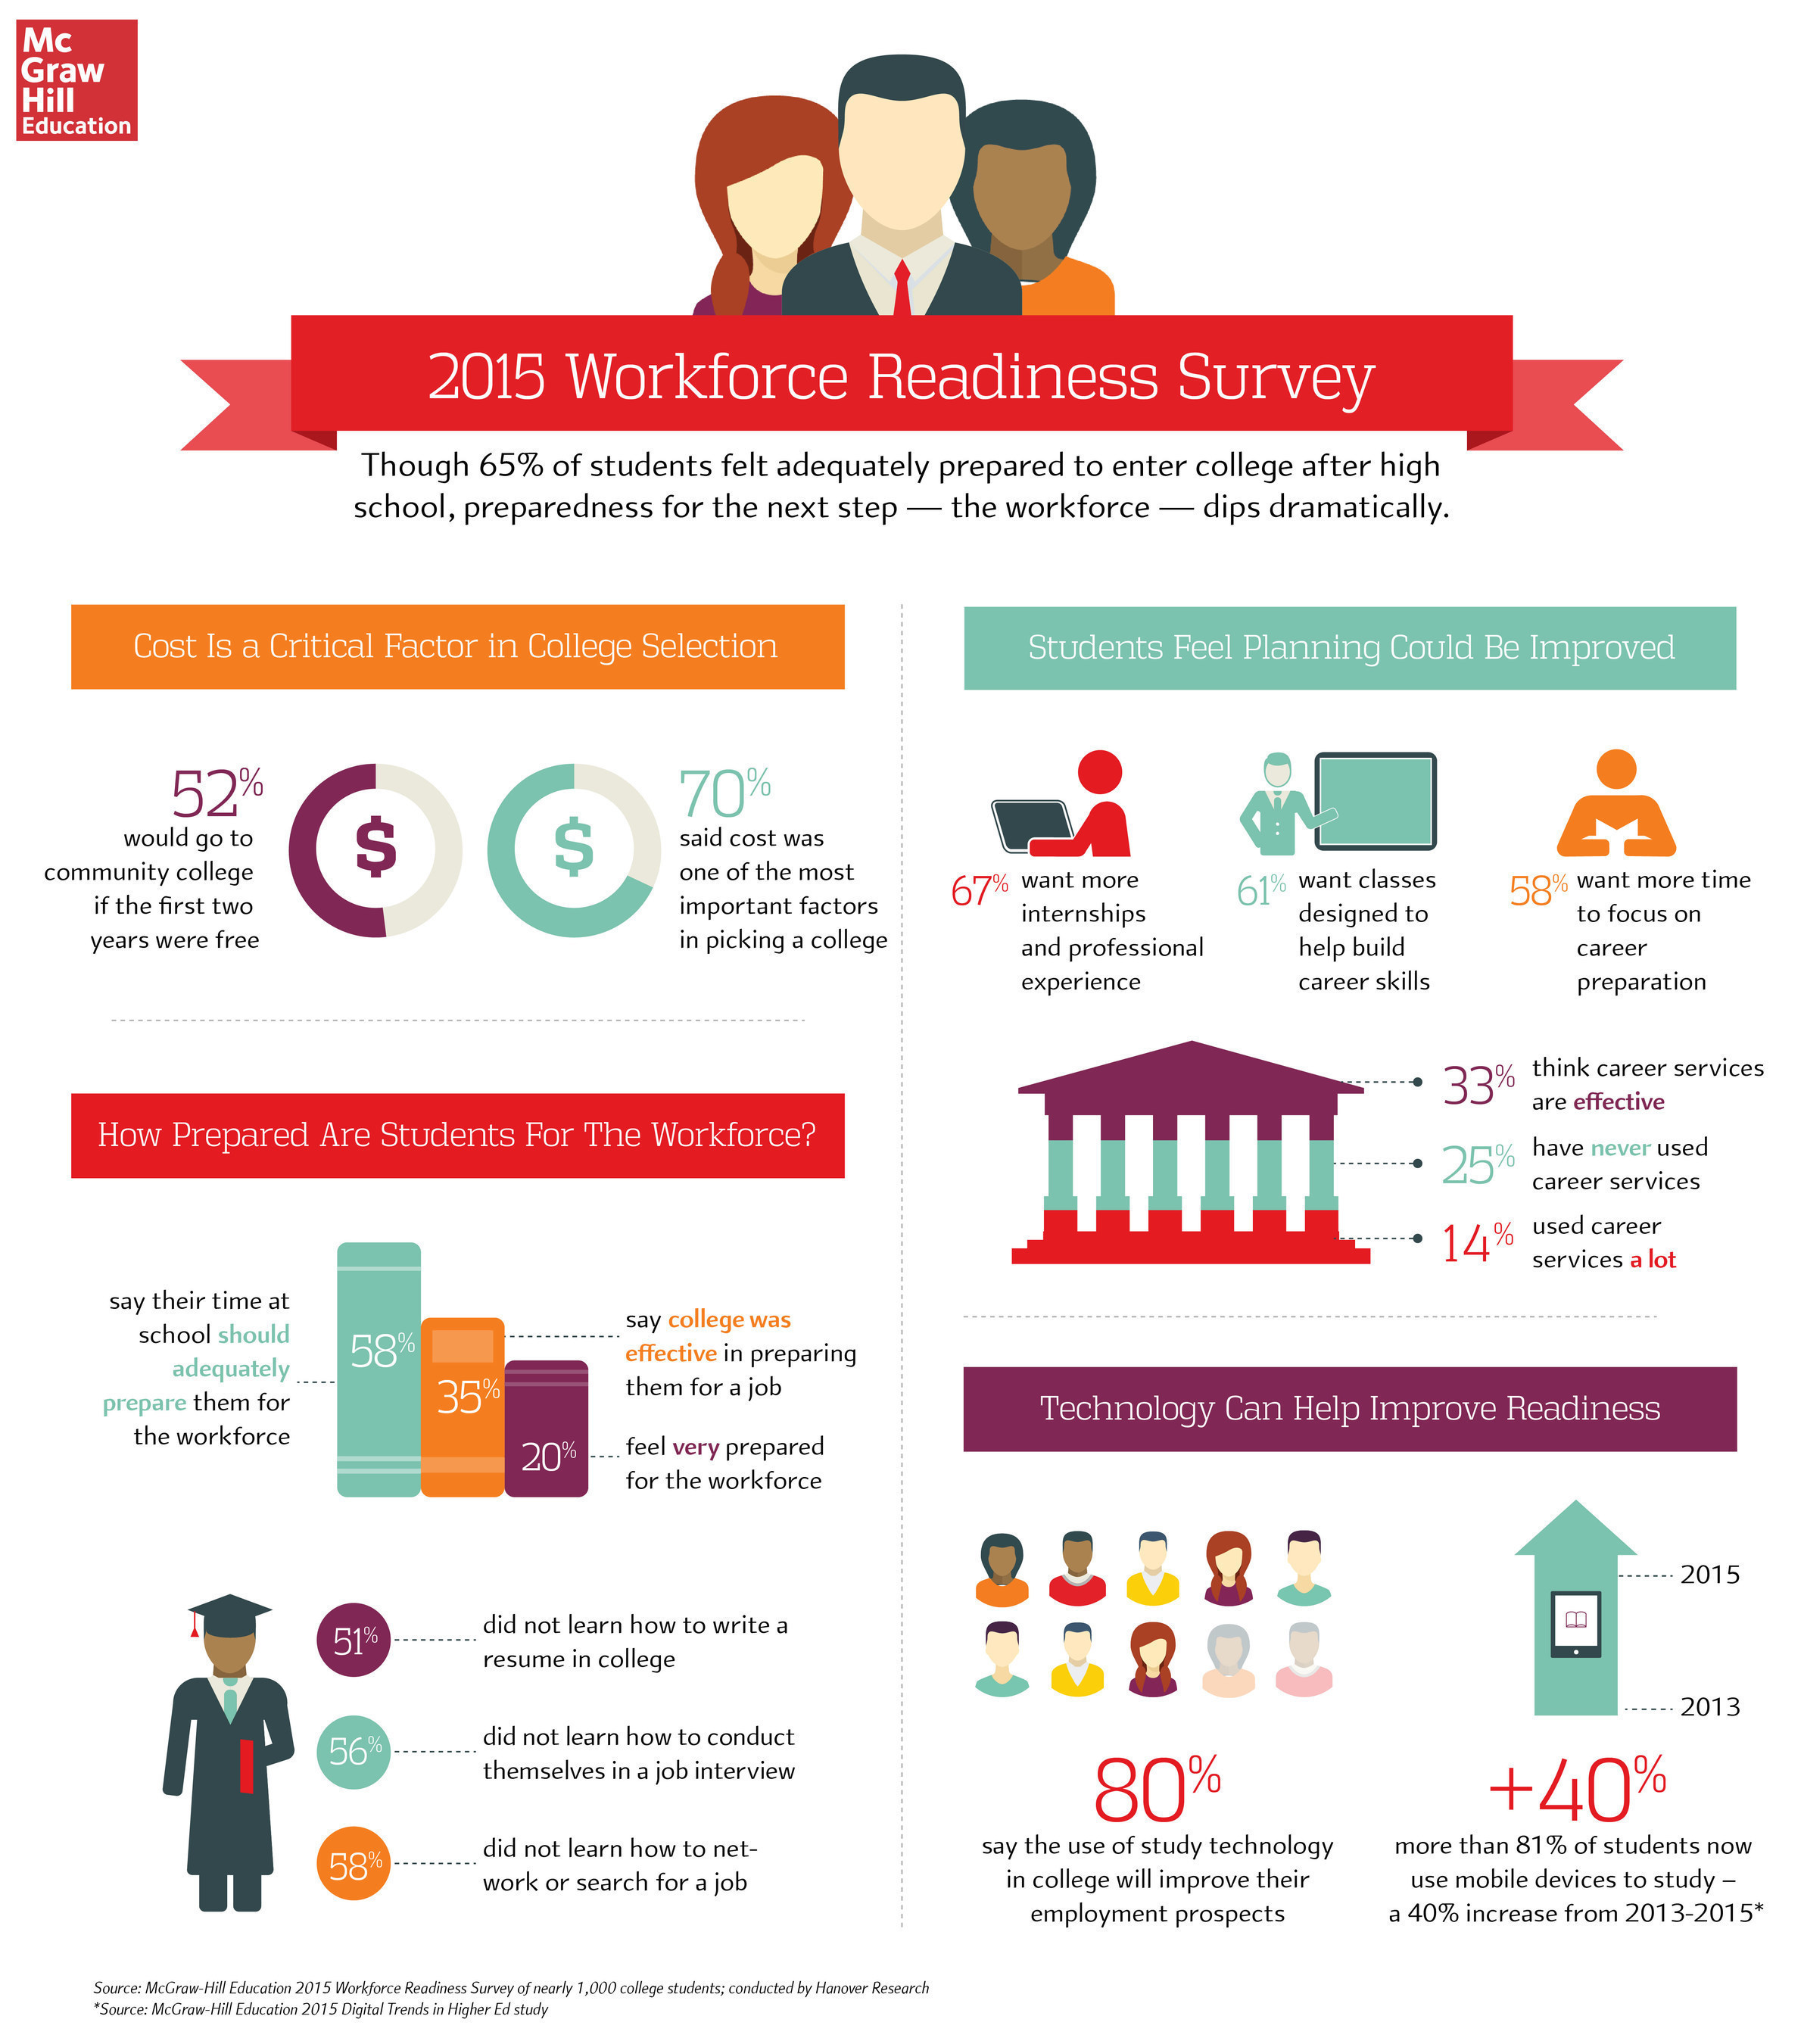 McGraw-Hill Education 2015 Workforce Readiness Survey   Infographic